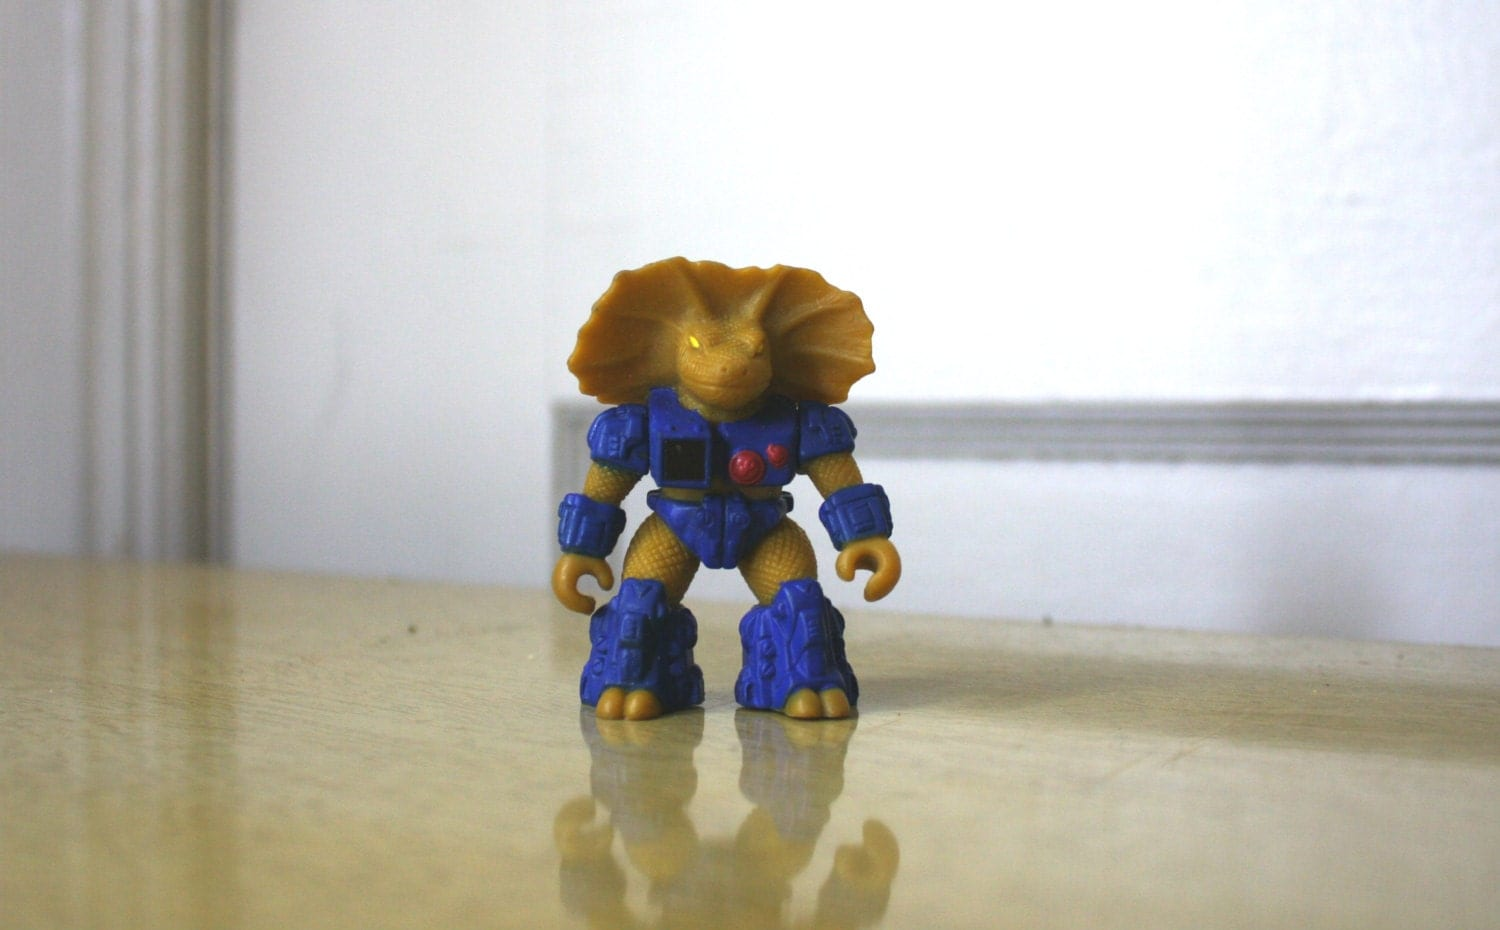 Rare Toys From The 80s : Battle beast beastformers rare vintage s toy leapin lizard